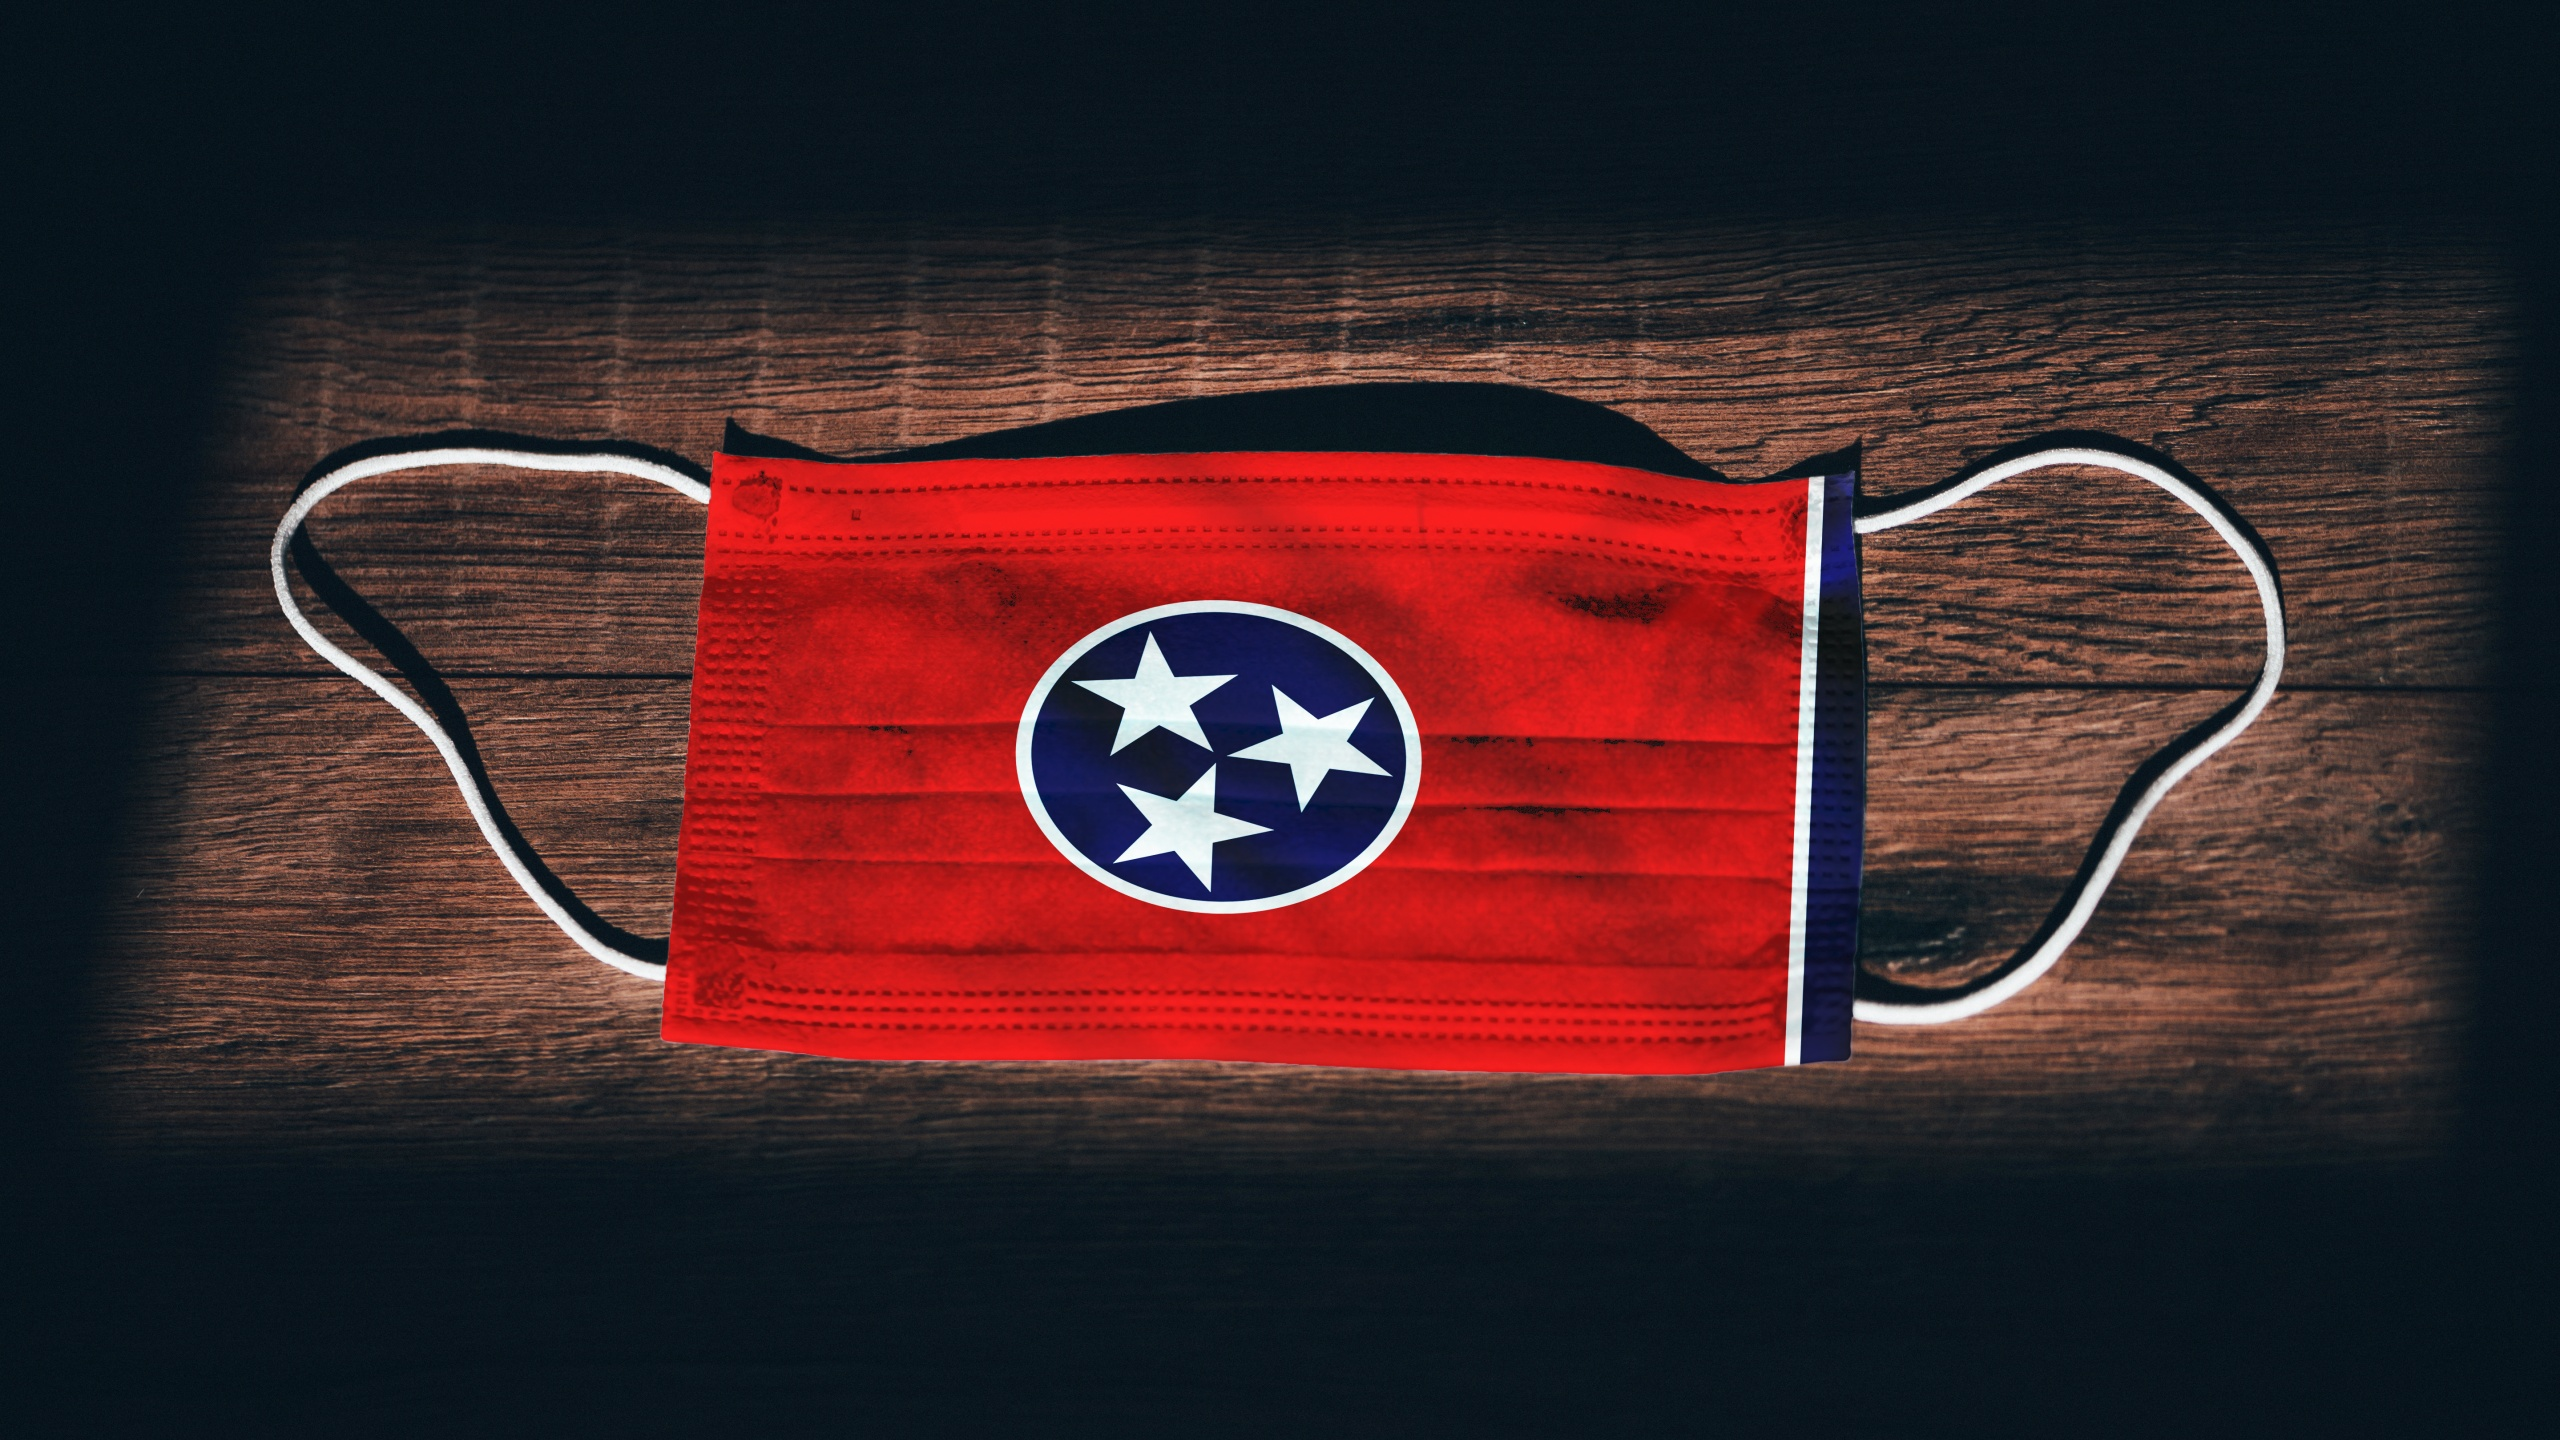 Tennessee Flag. Coronavirus Covid 19 in U.S. State. Medical mask isolate on a black background. Face and mouth masks for protection against airborne infections in USA, America